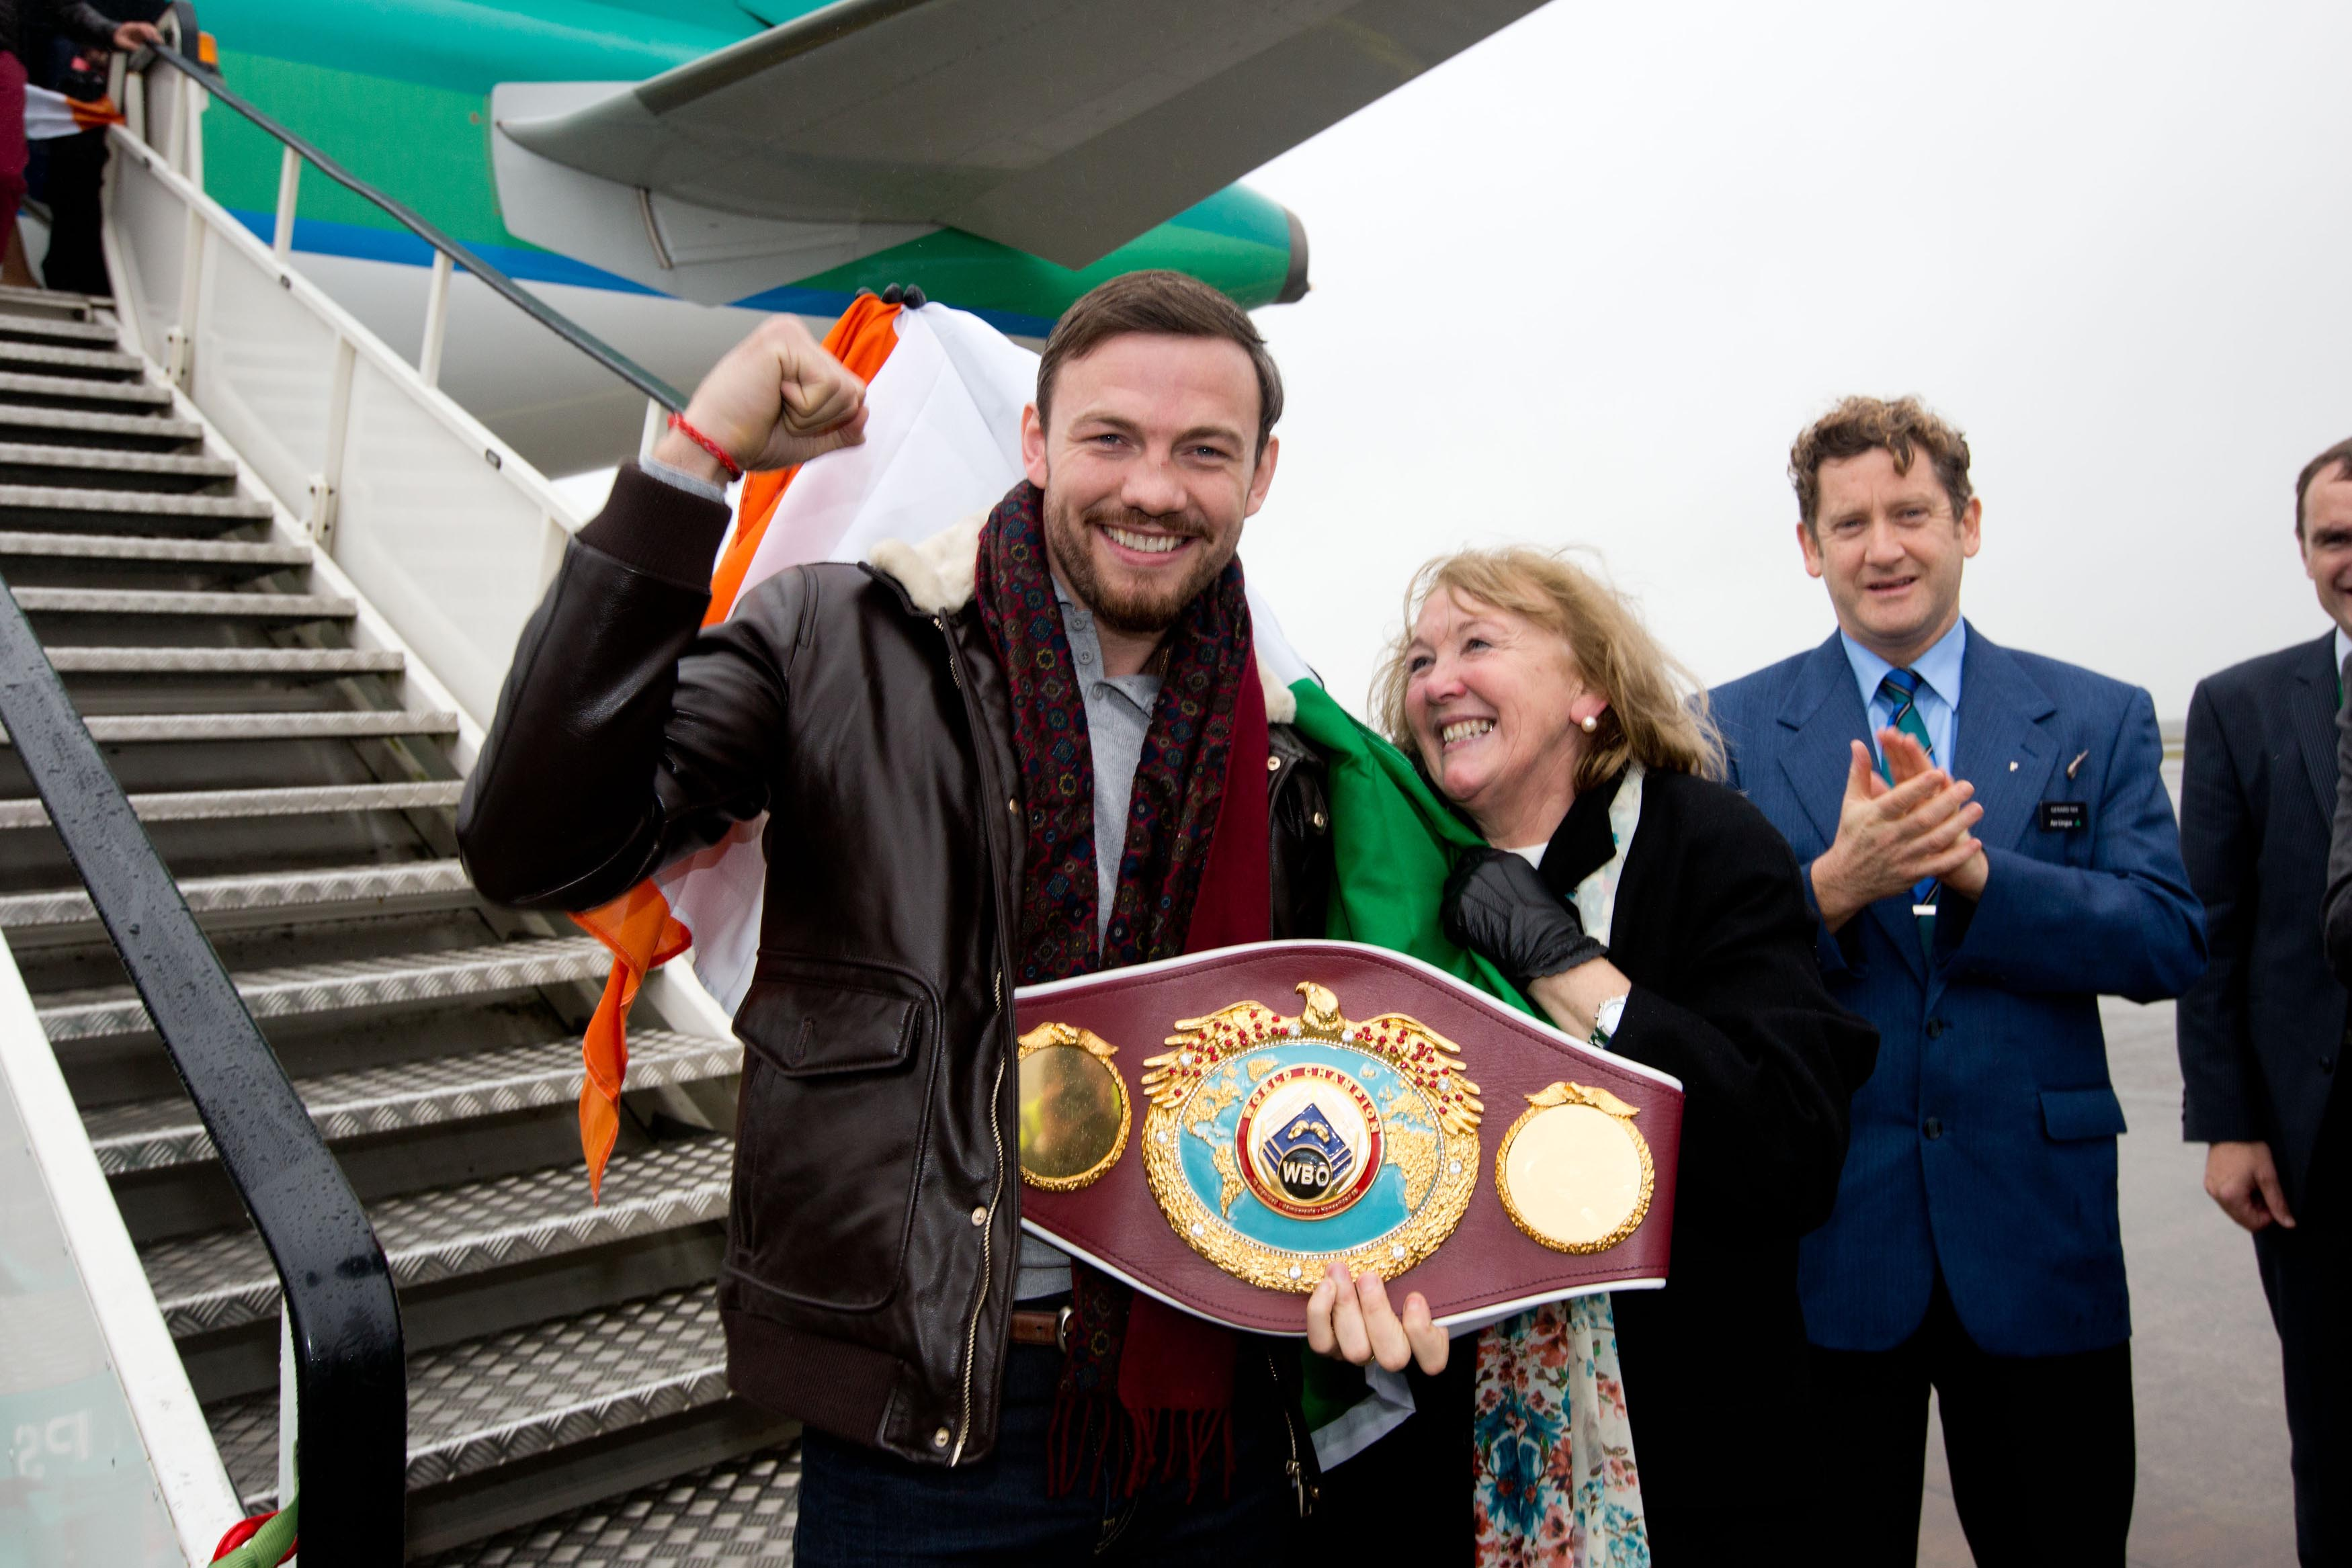 World middleweight boxing champion Andy Lee was greeted off the plane by his mother Anne when he arrived back to a heroes welcome at Shannon Airport before join on to Limerick City Hall for a civic reception. Pic Sean Curtin Photo